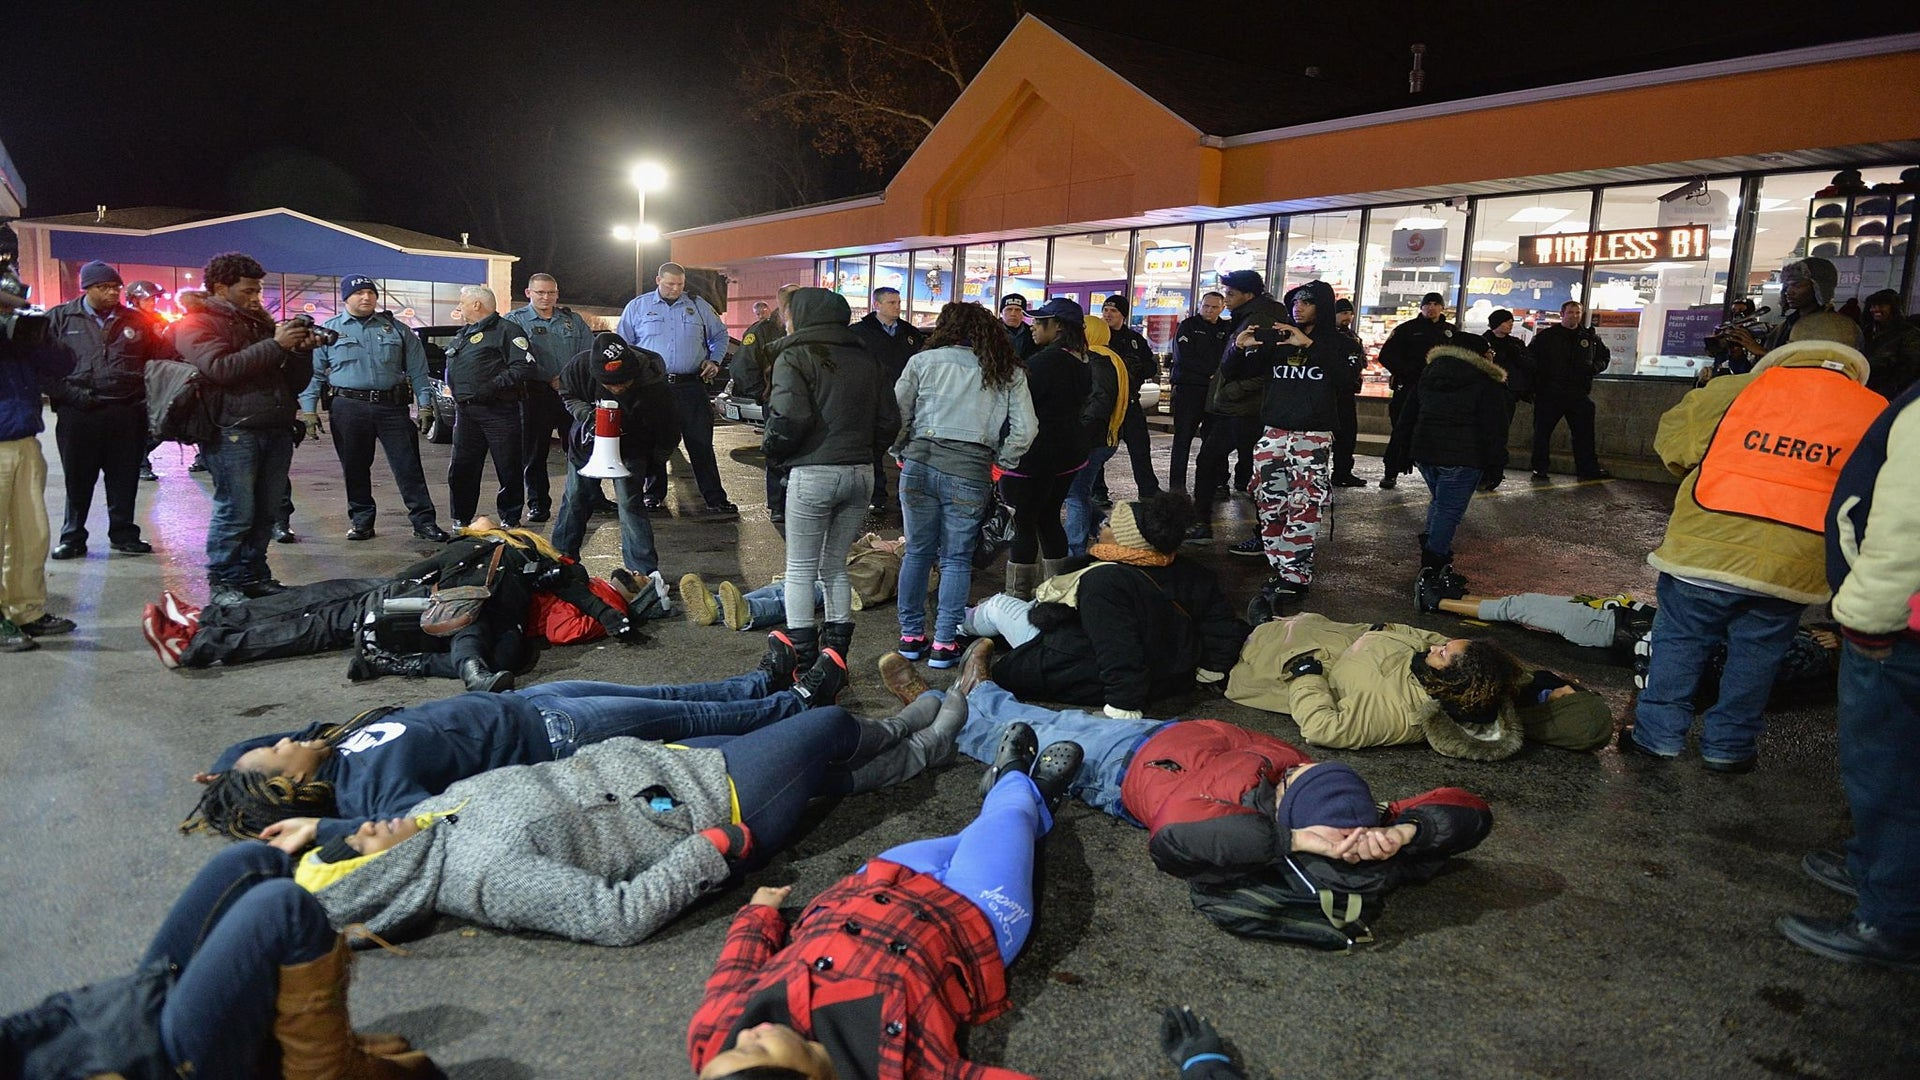 Protesters Gather on Christmas Eve in Honor of Antonio Martin